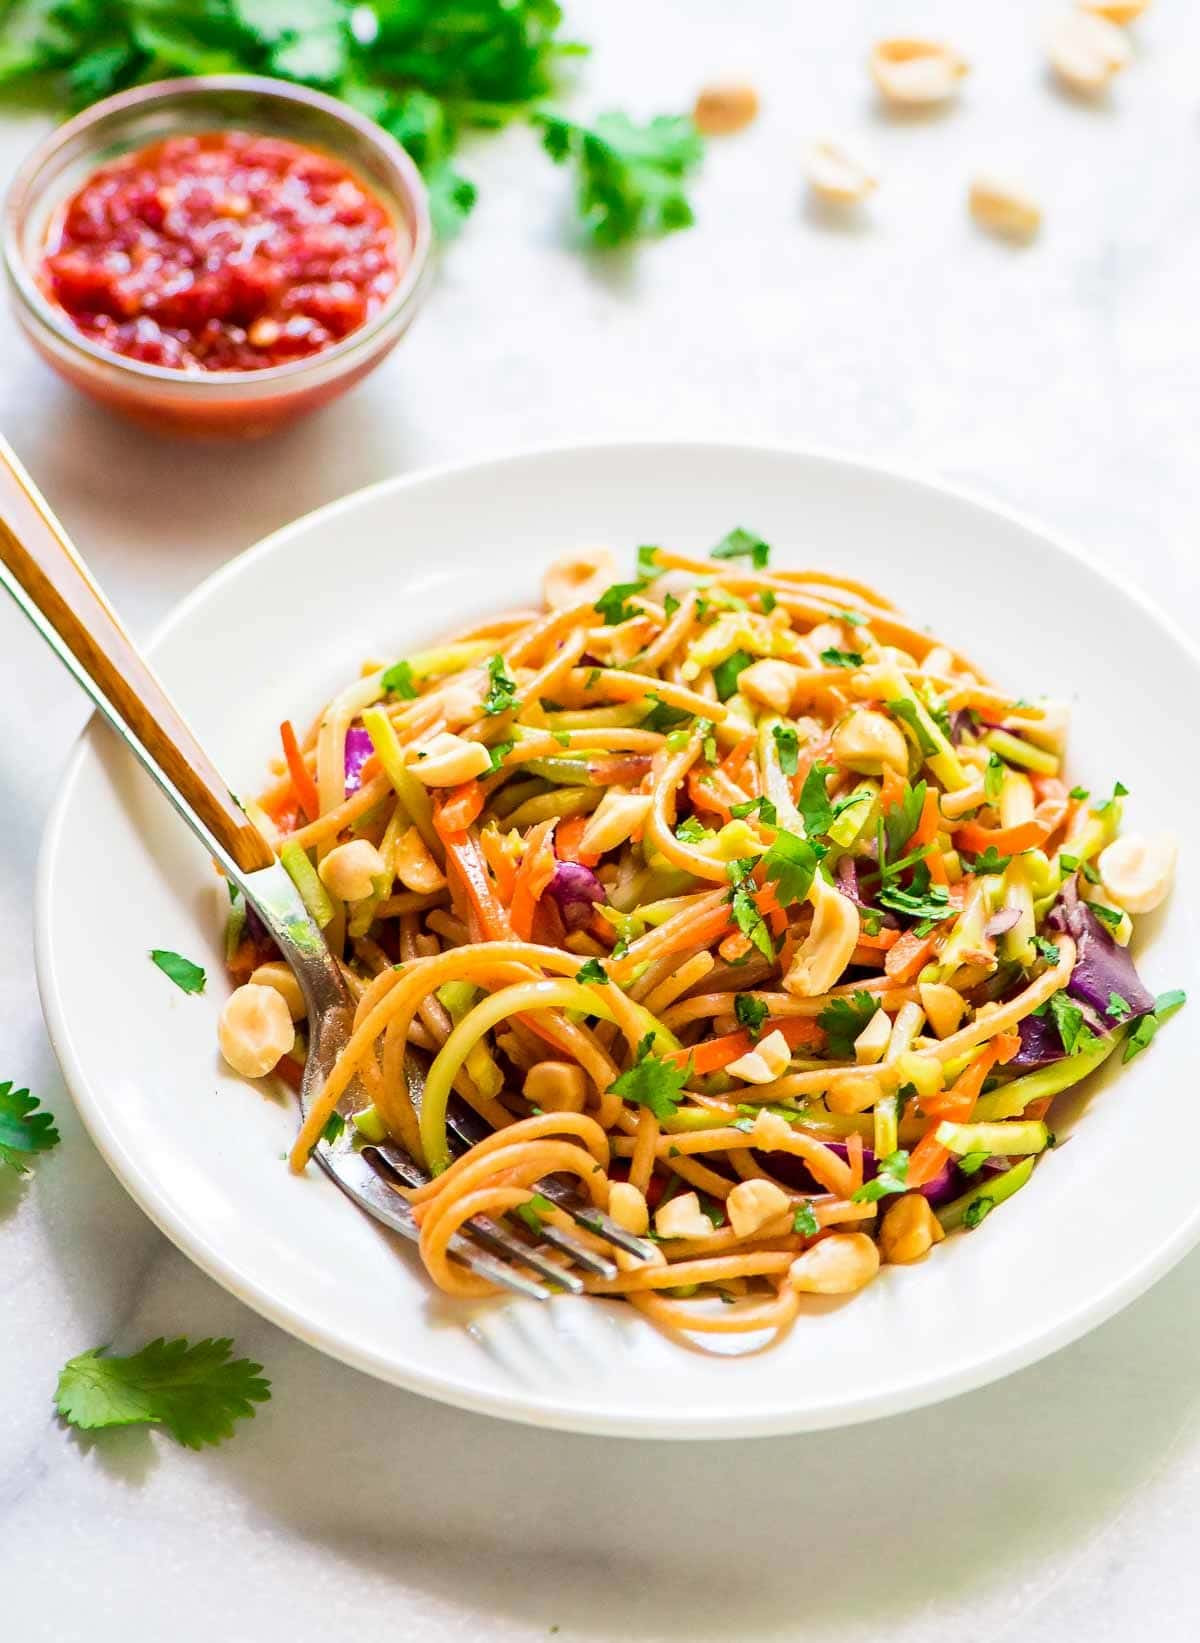 Easy Healthy Asian Recipes  Asian Noodle Salad with Creamy Peanut Dressing